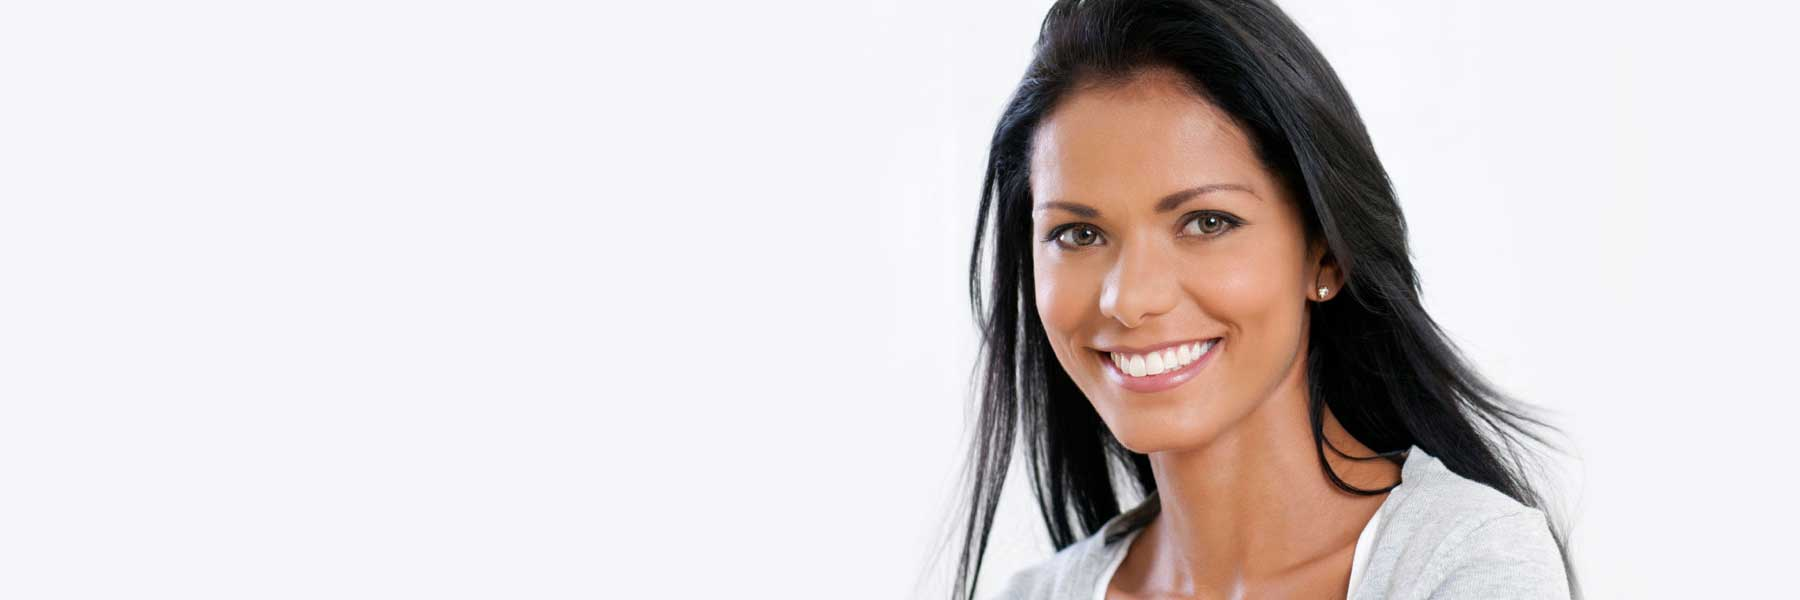 General Dentistry in Grapevine TX